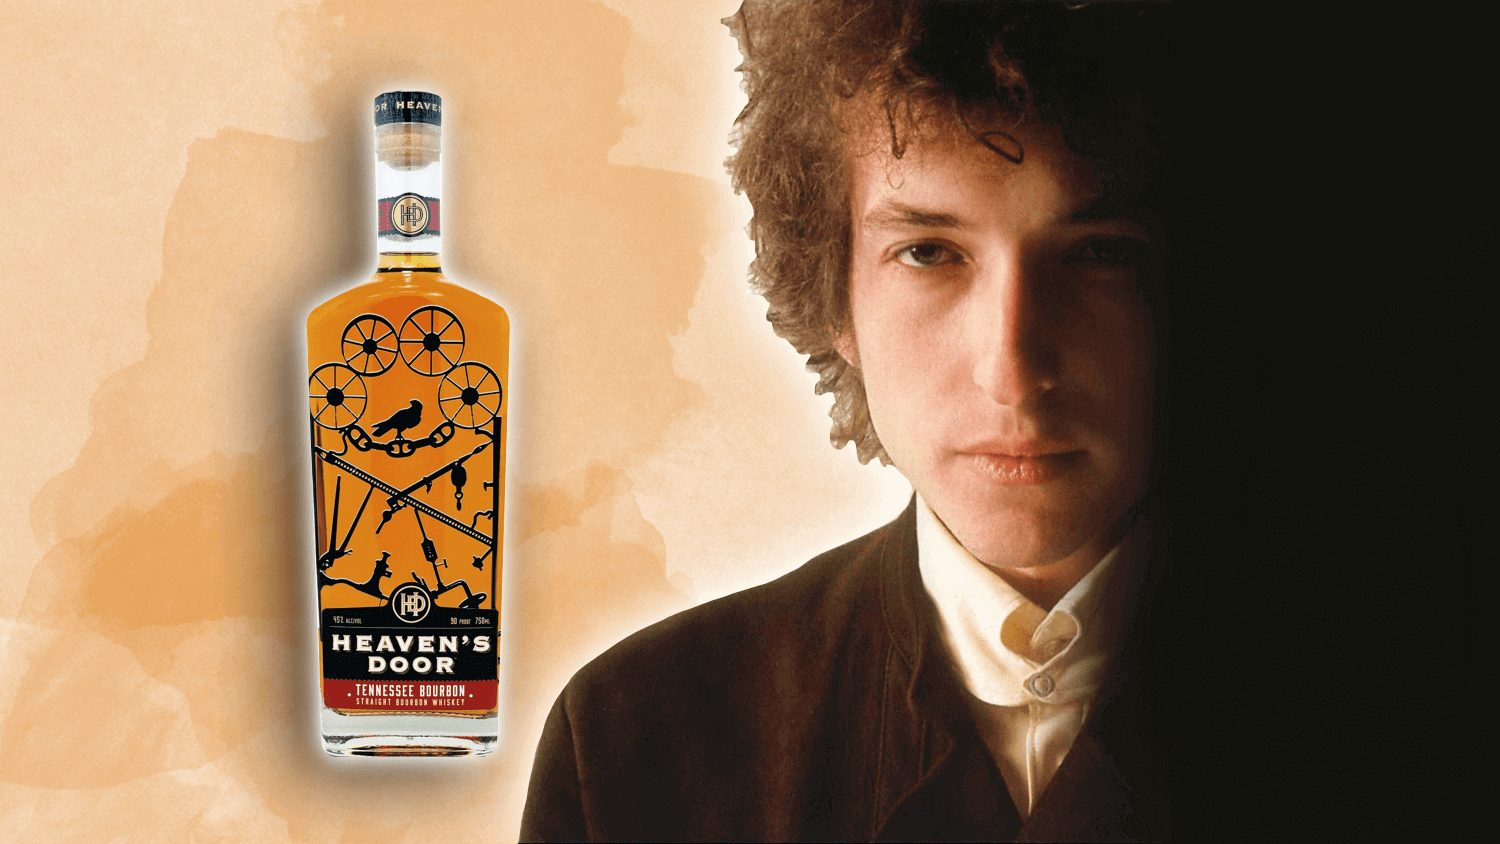 Bob Dylan's Vegan Whiskey Will Have Its Own Distillery